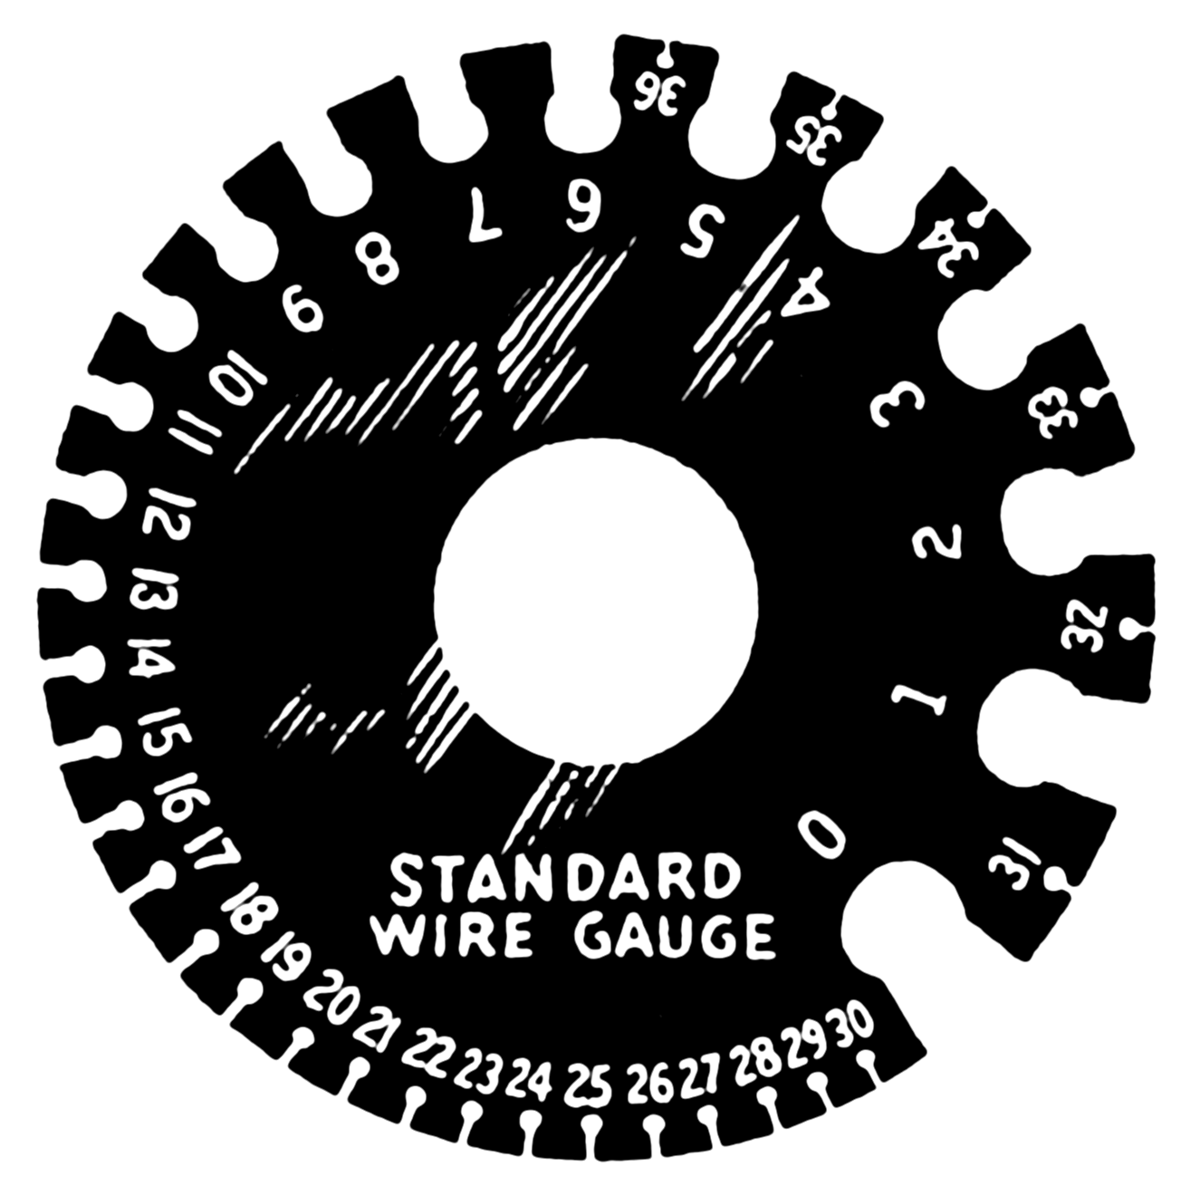 wire gauge wikipedia